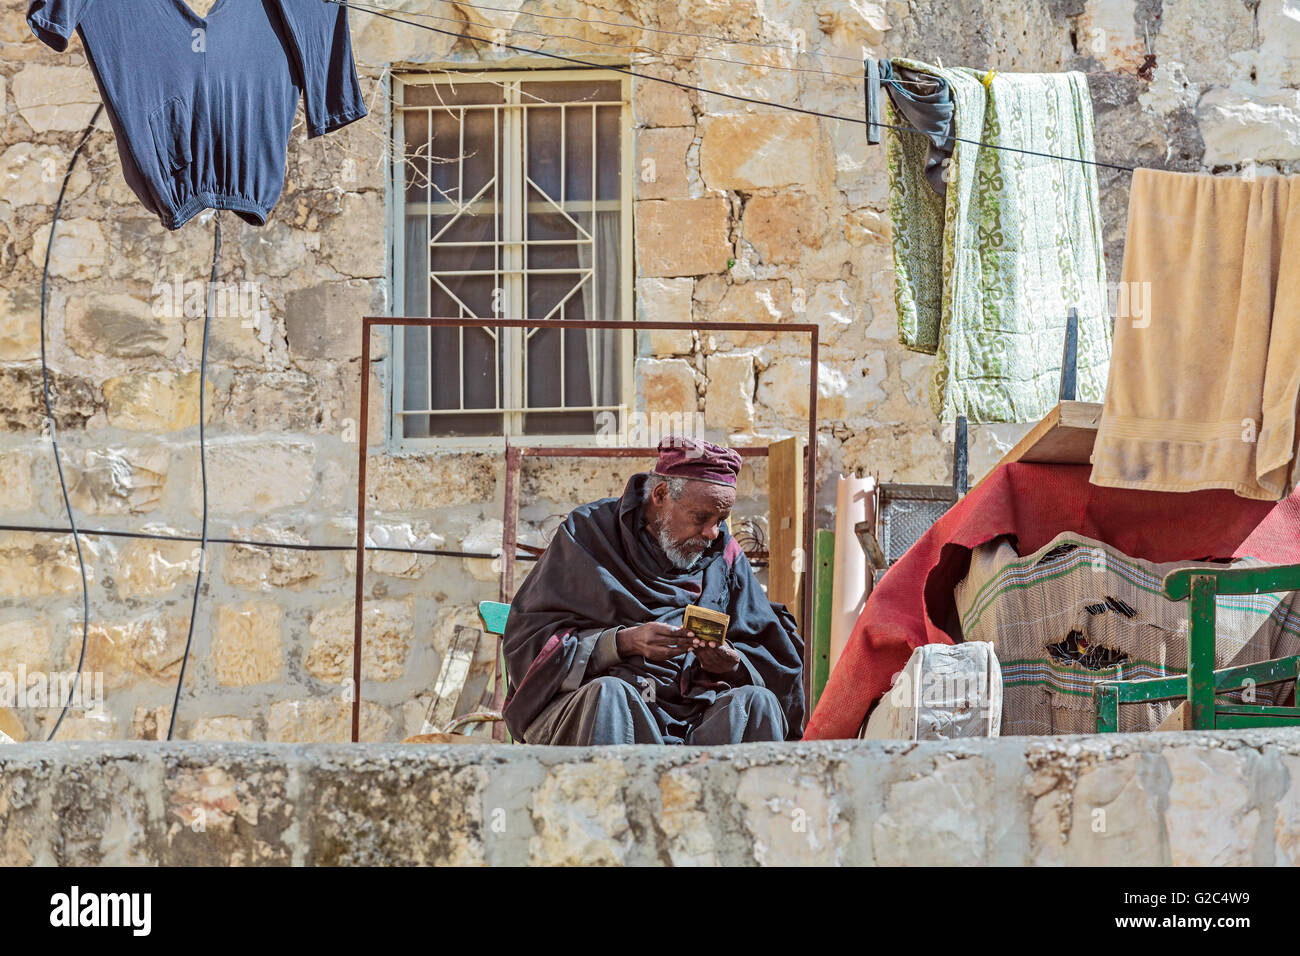 JERUSALEM, ISRAEL - FEBRUARY 15, 2013: Priest of Ethiopian Orthodox Tewahedo Church sitting on balcony near Holy - Stock Image